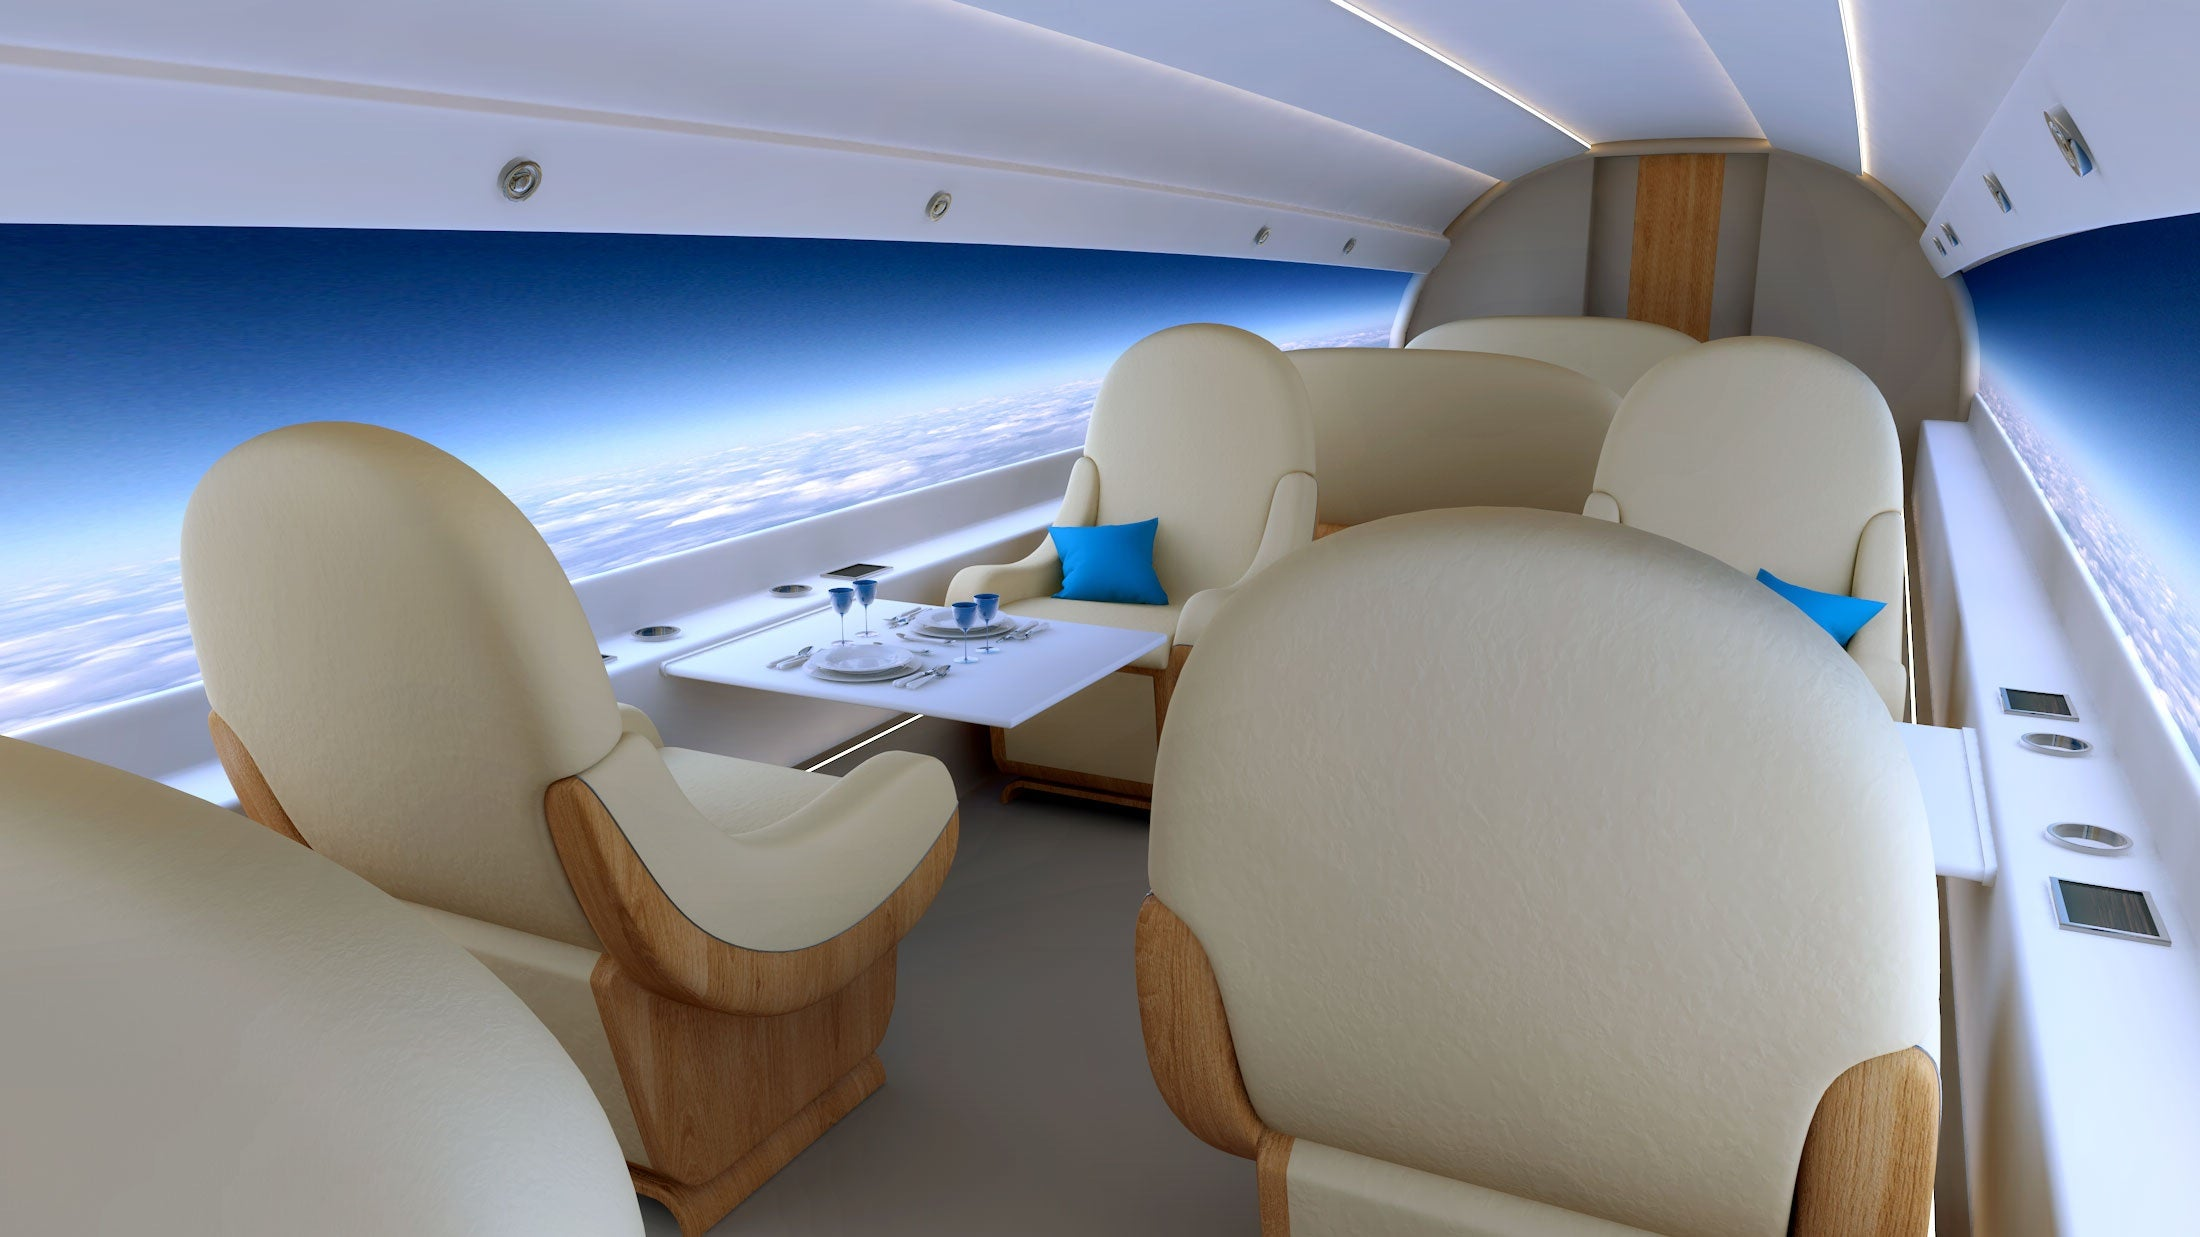 Supersonic Plane Will Have Livestream Of The Outdoors Instead Of Windows